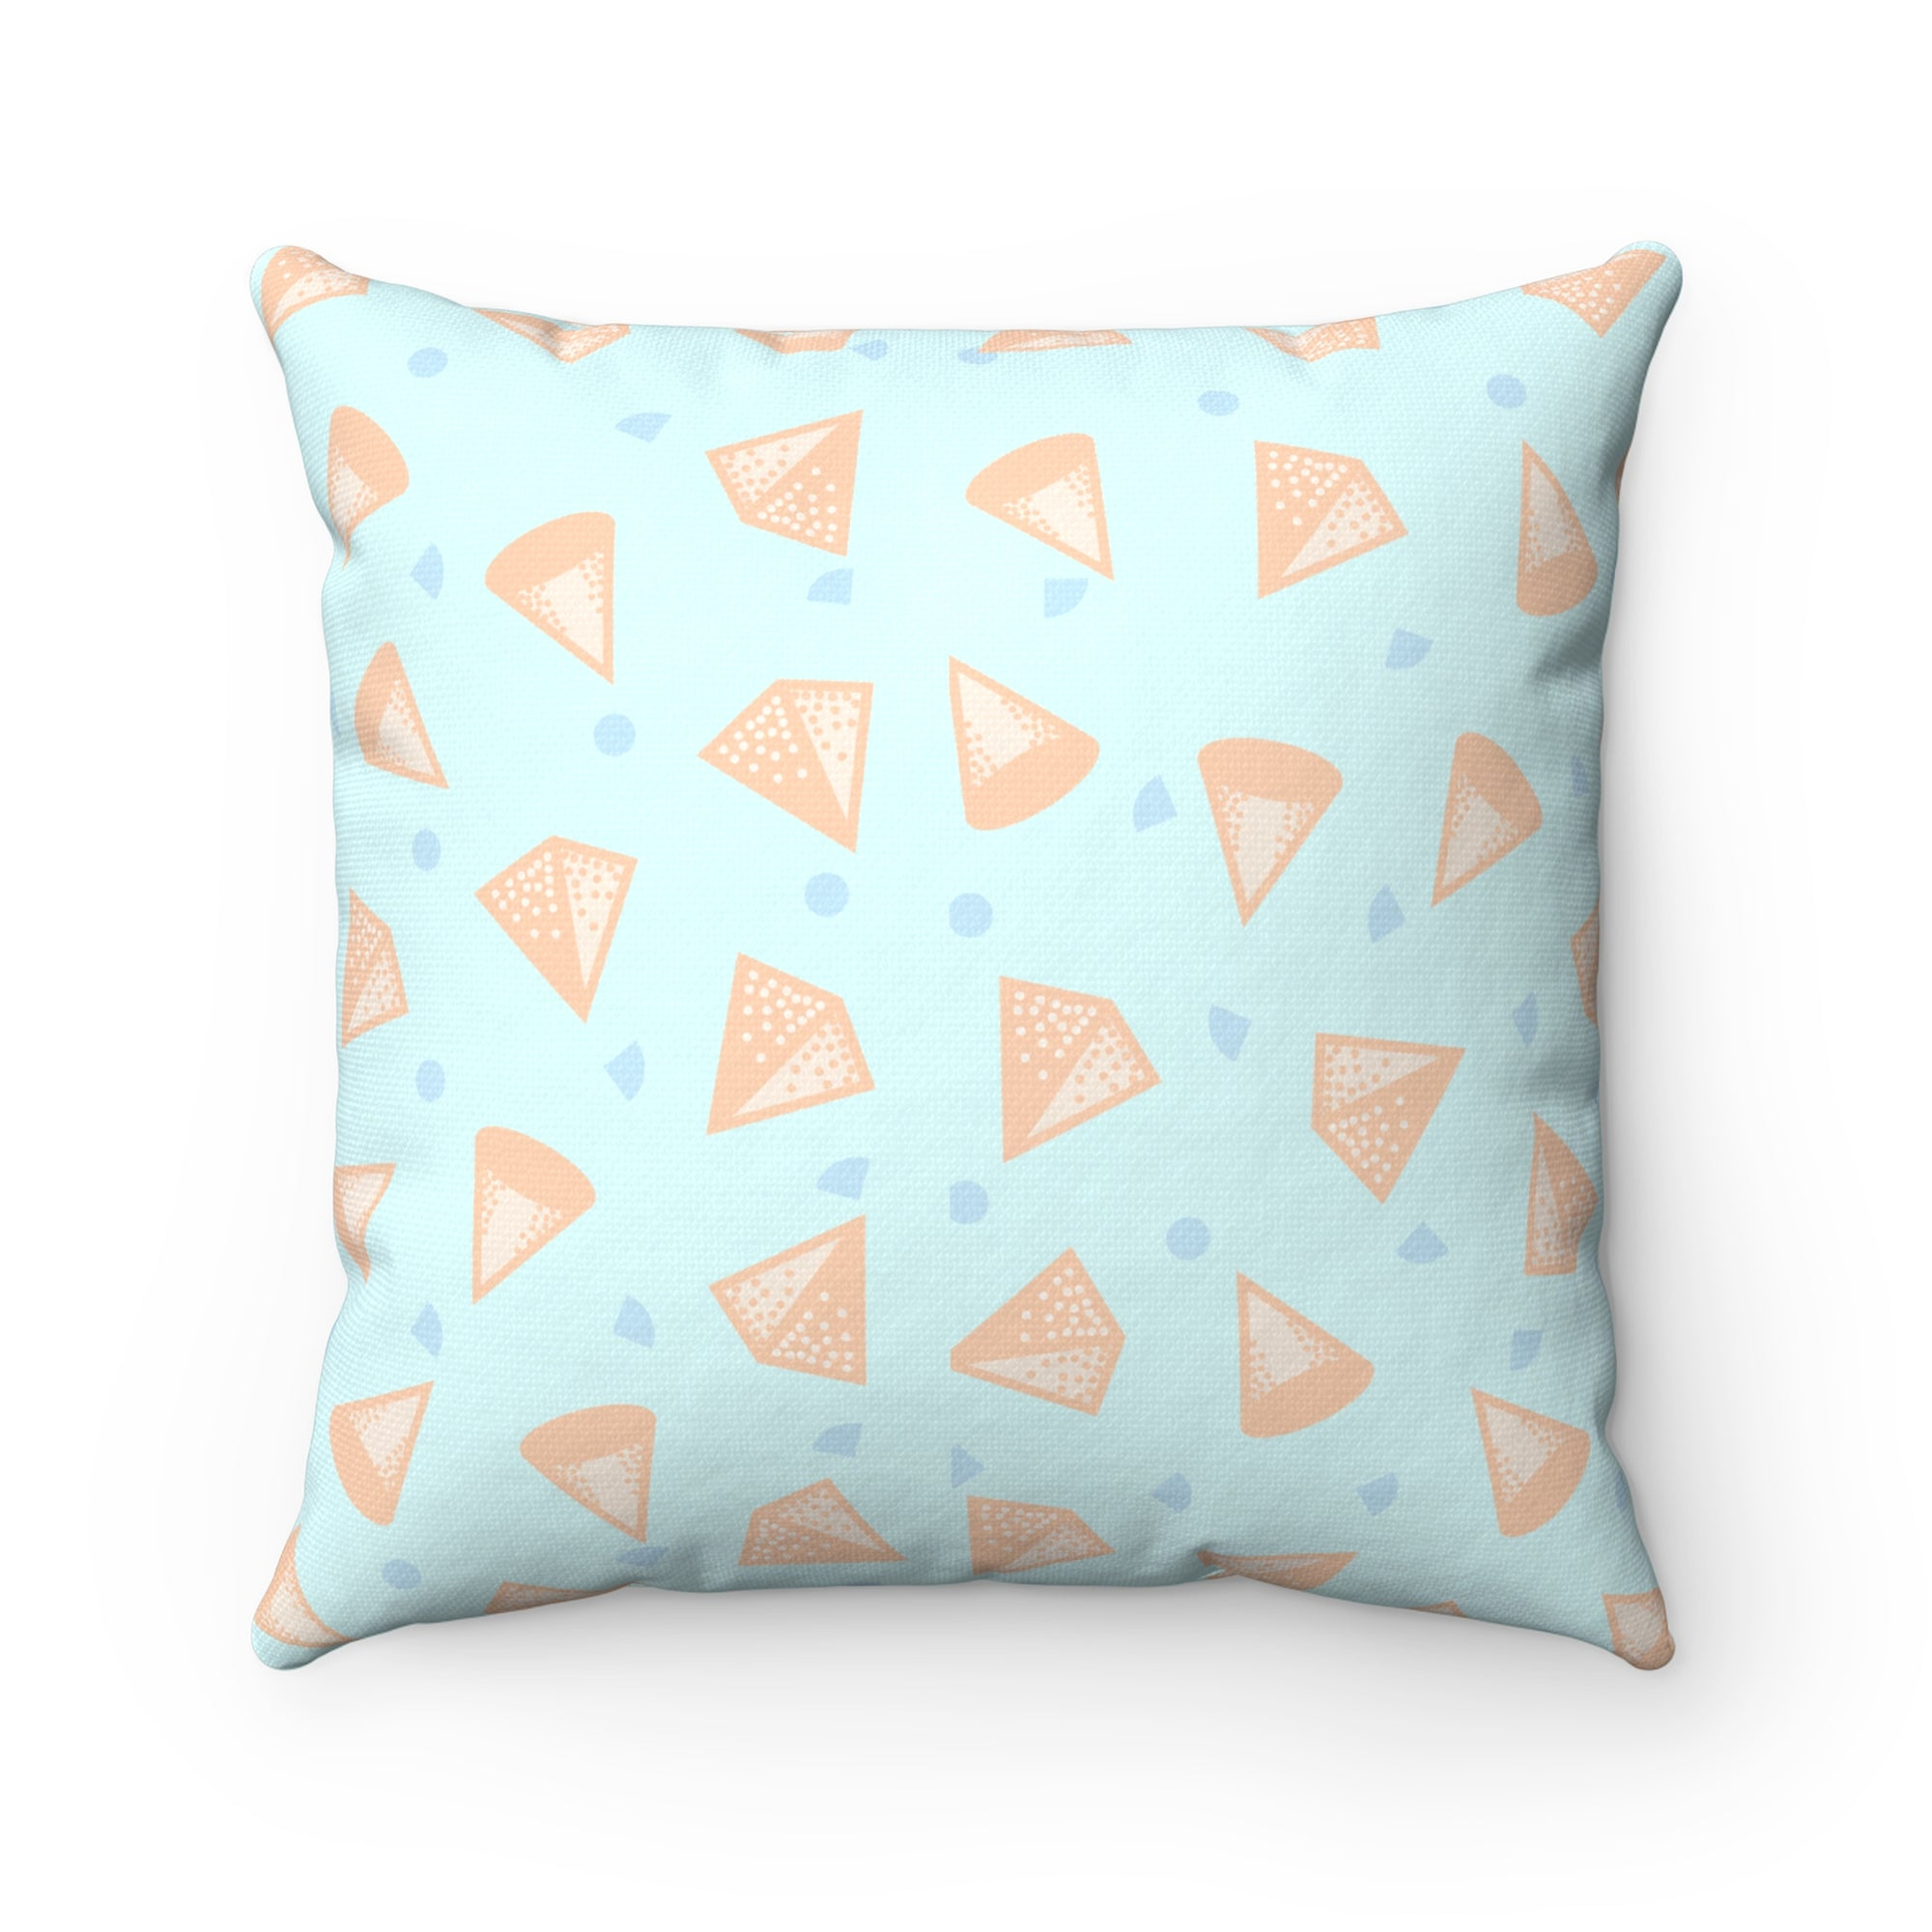 spun products polyester case prints thalia pillow equality square by of seeds